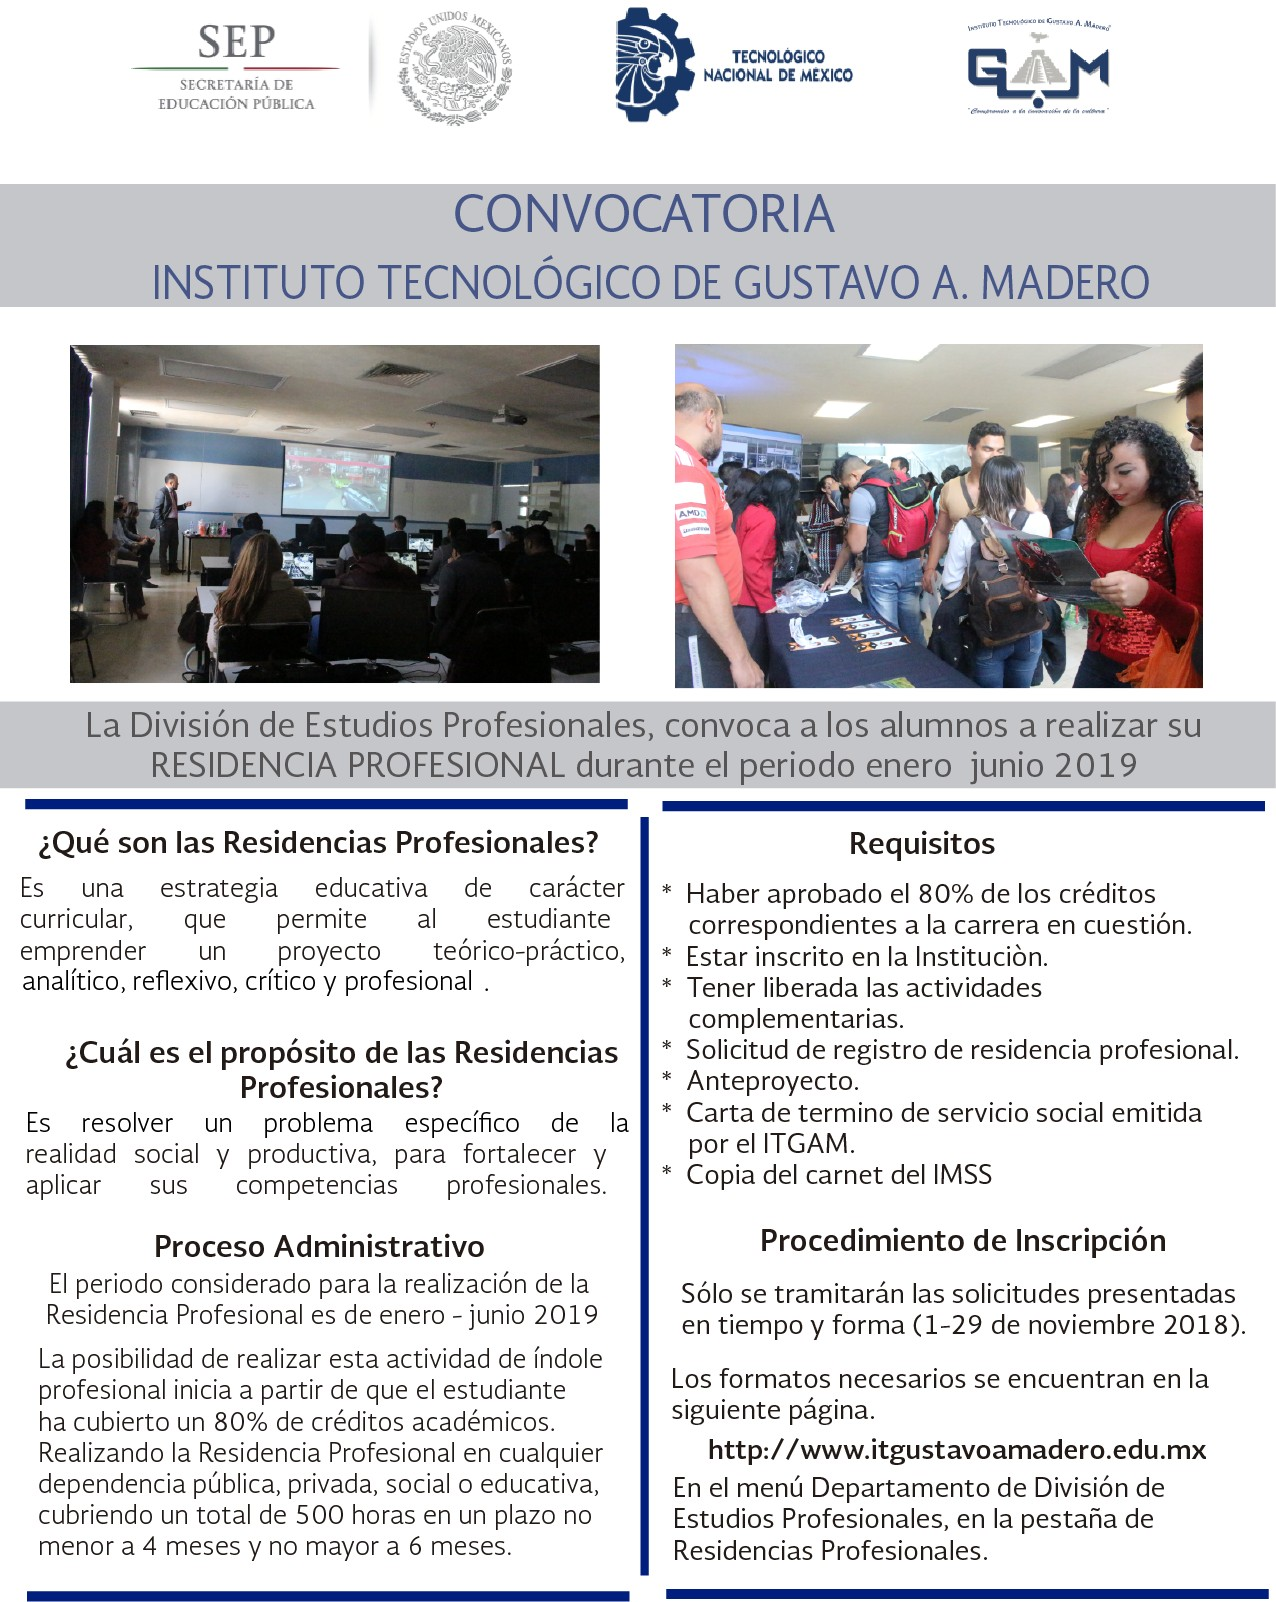 Imprimir Calendario Escolar 2017 Y 2019 Sep Más Recientes Instituto Tecnol³gico De Gustavo A Madero Of Imprimir Calendario Escolar 2017 Y 2019 Sep Más Recientes Instituto Tecnol³gico De Gustavo A Madero